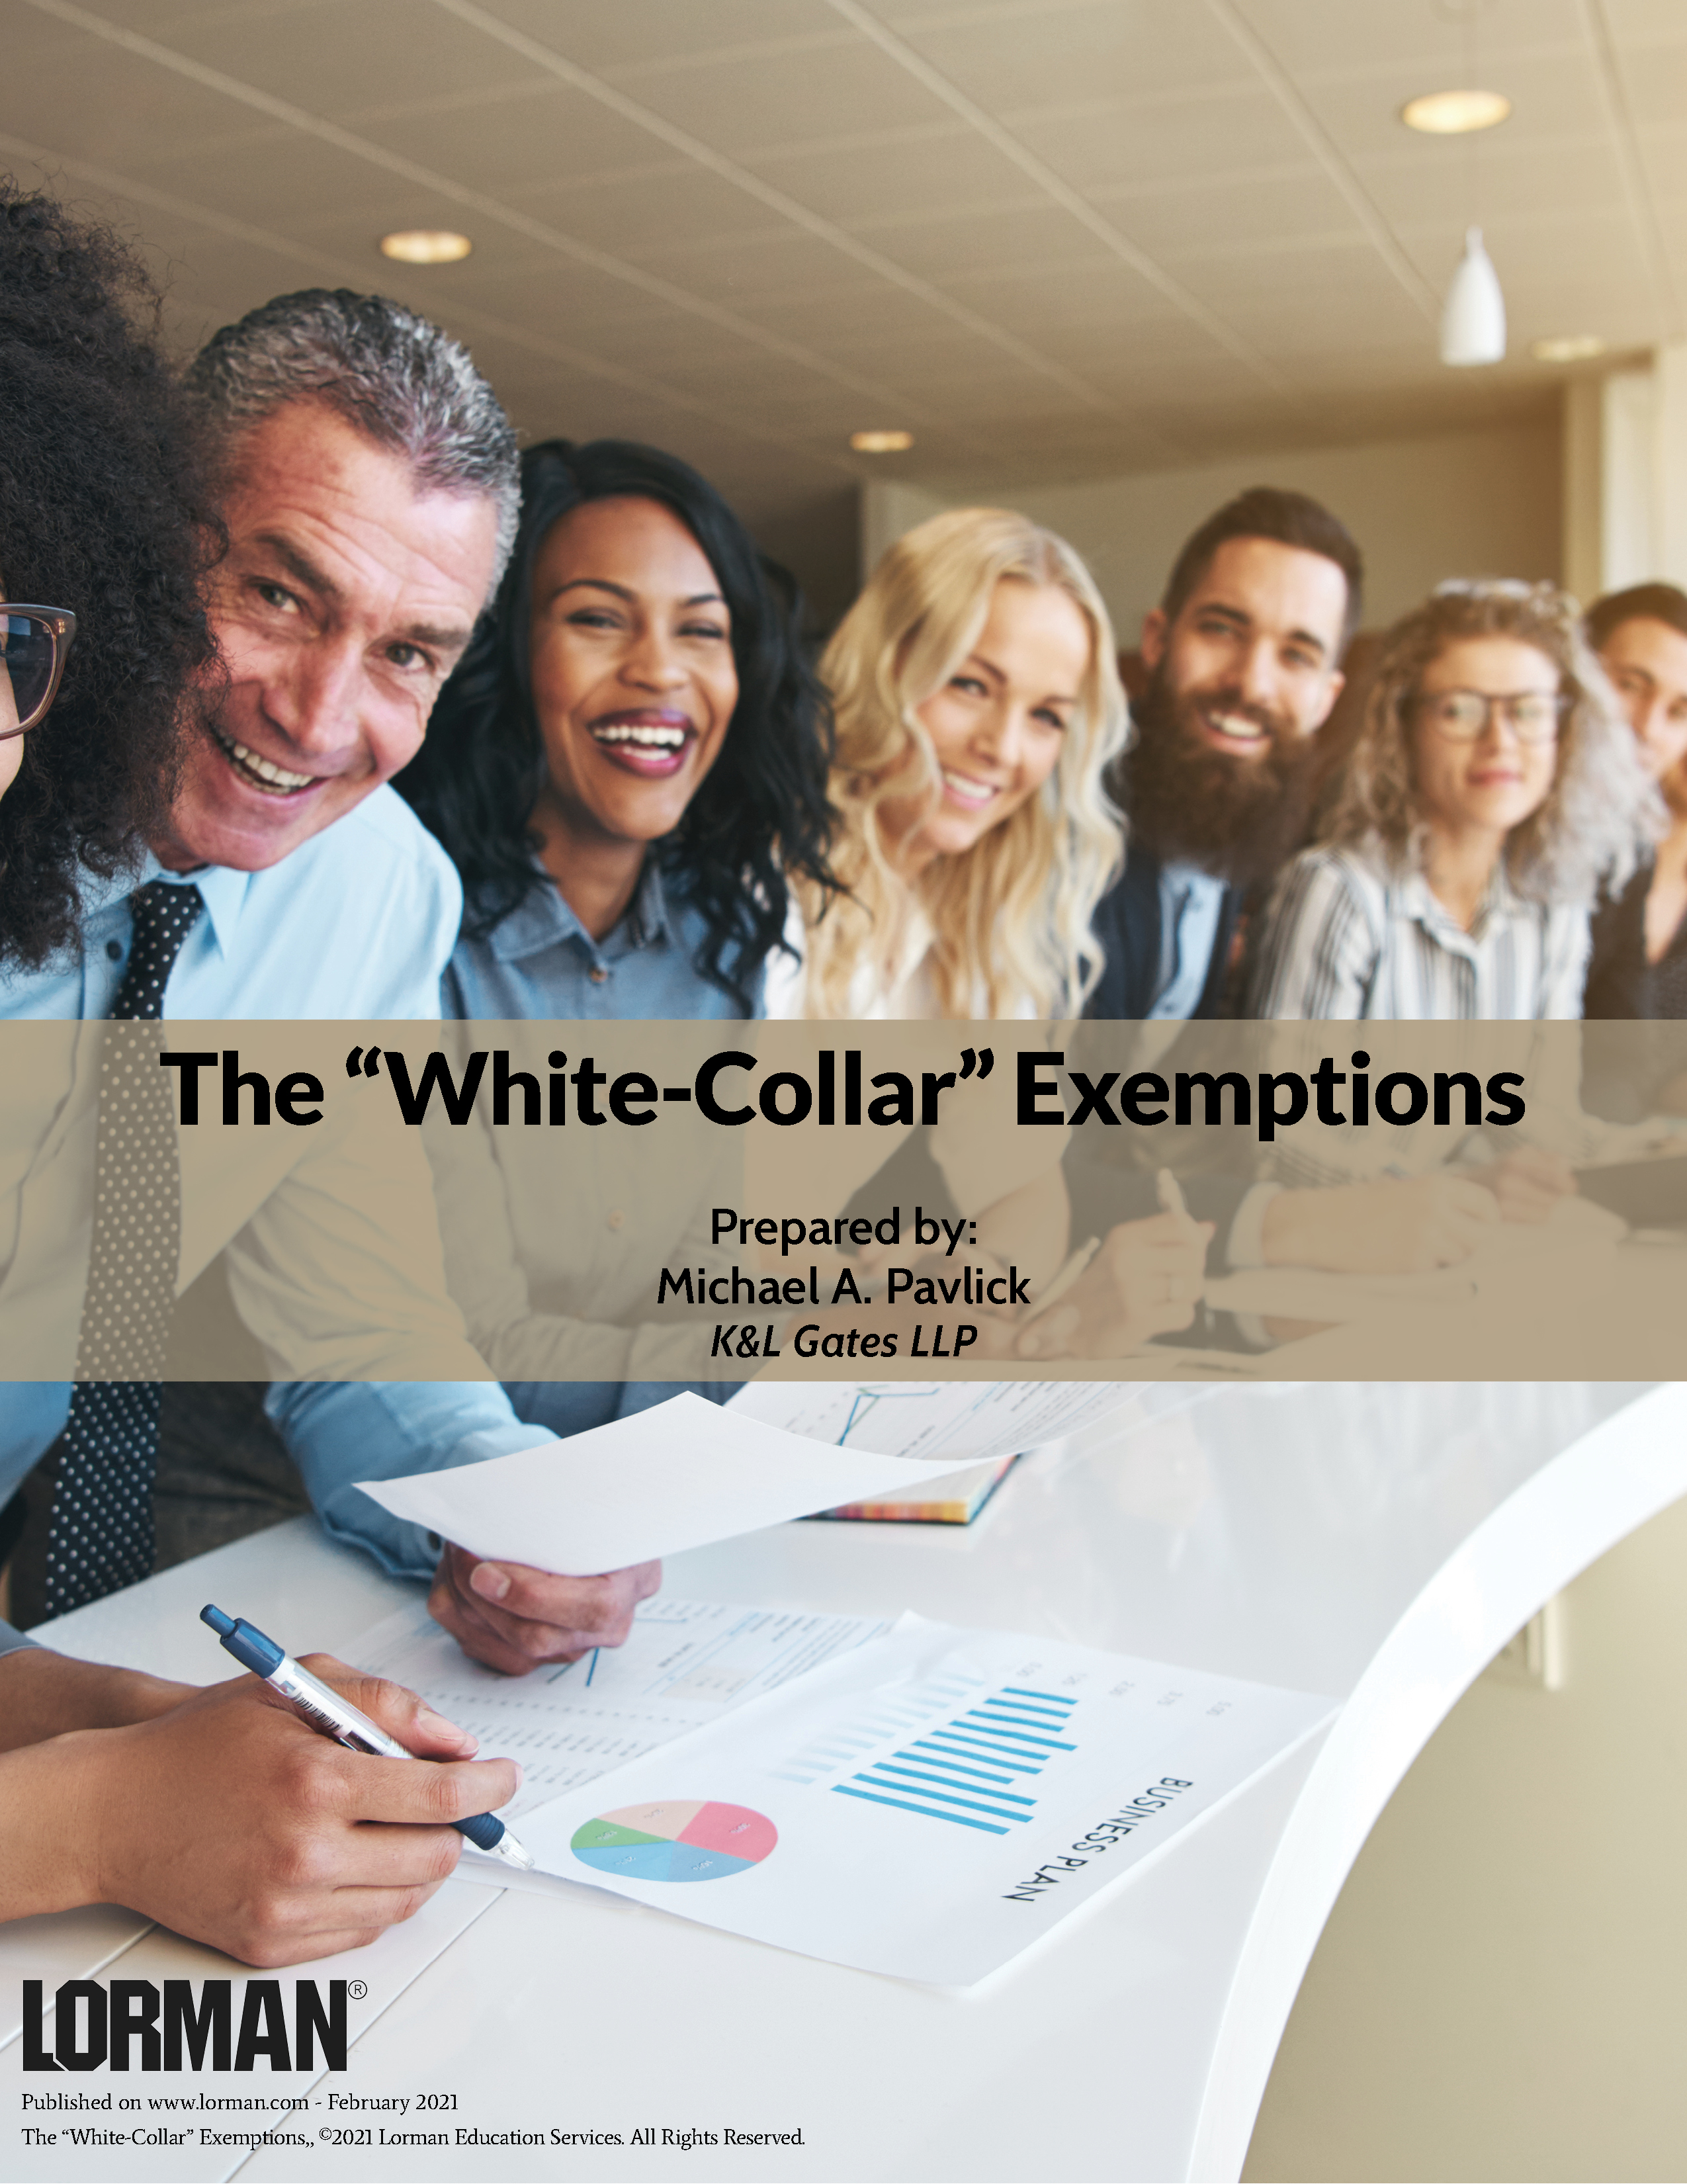 The White-Collar Exemptions